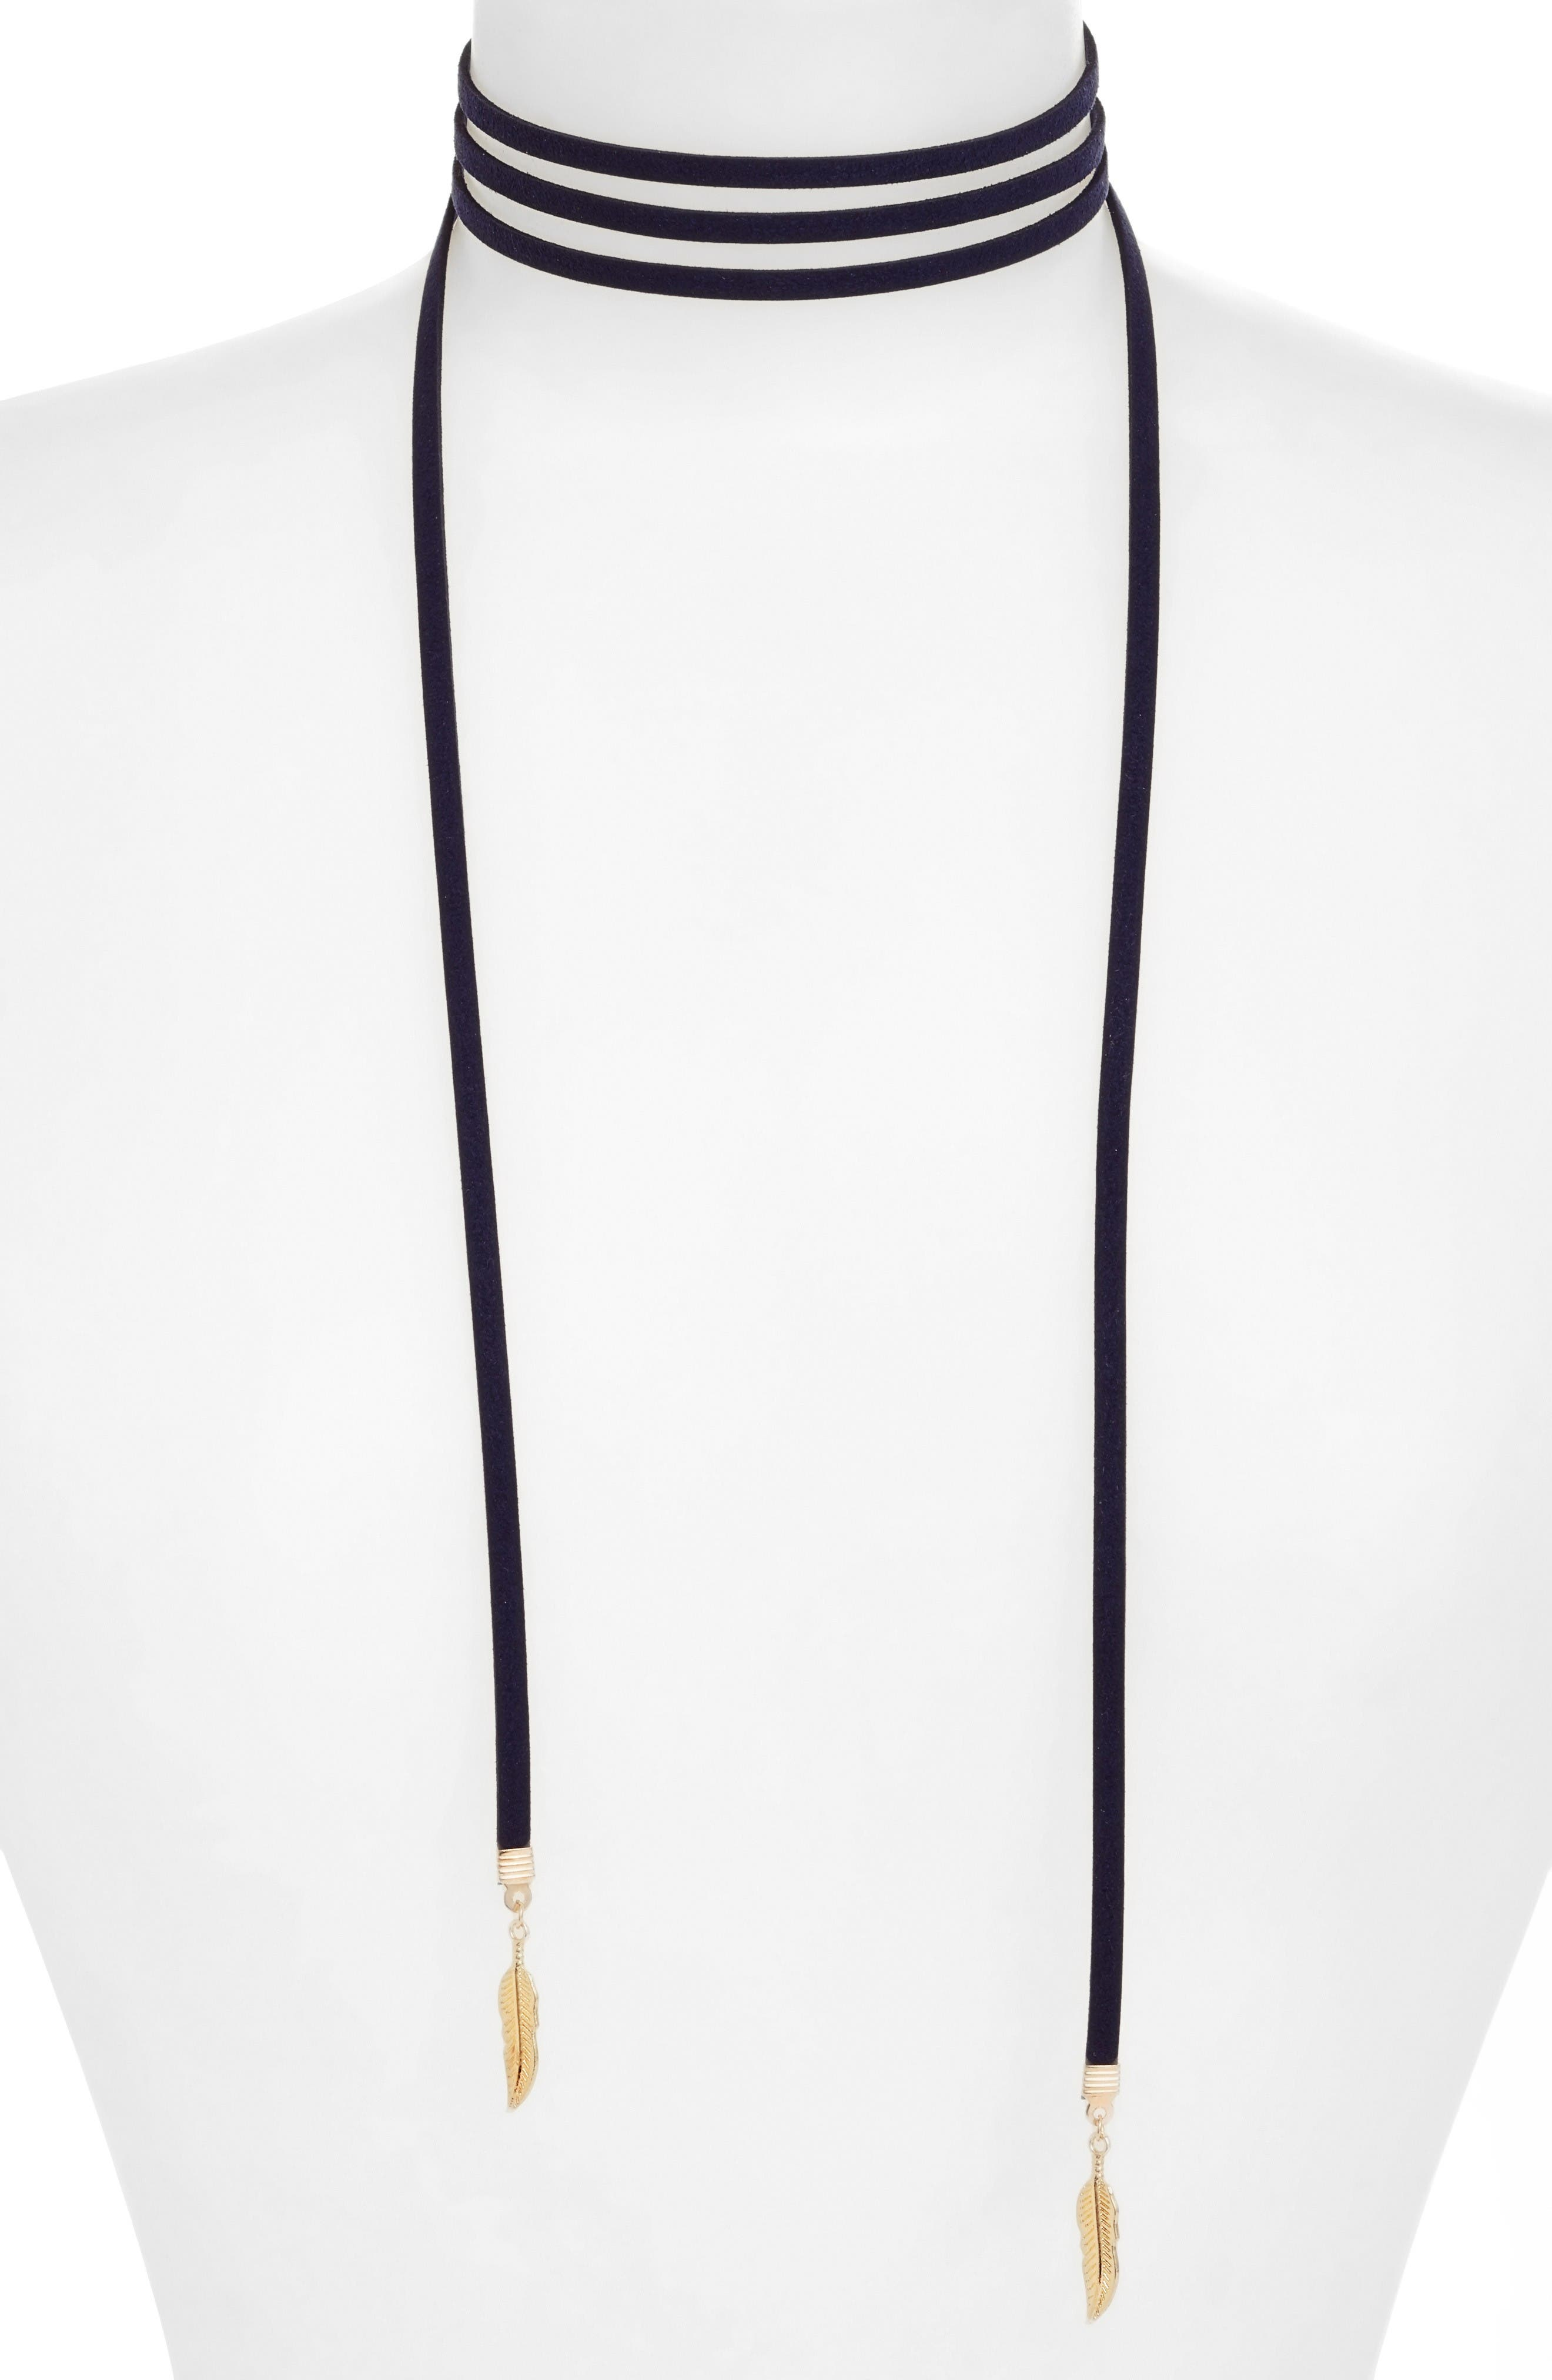 Alternate Image 1 Selected - Jules Smith Kale Wrap Choker Necklace